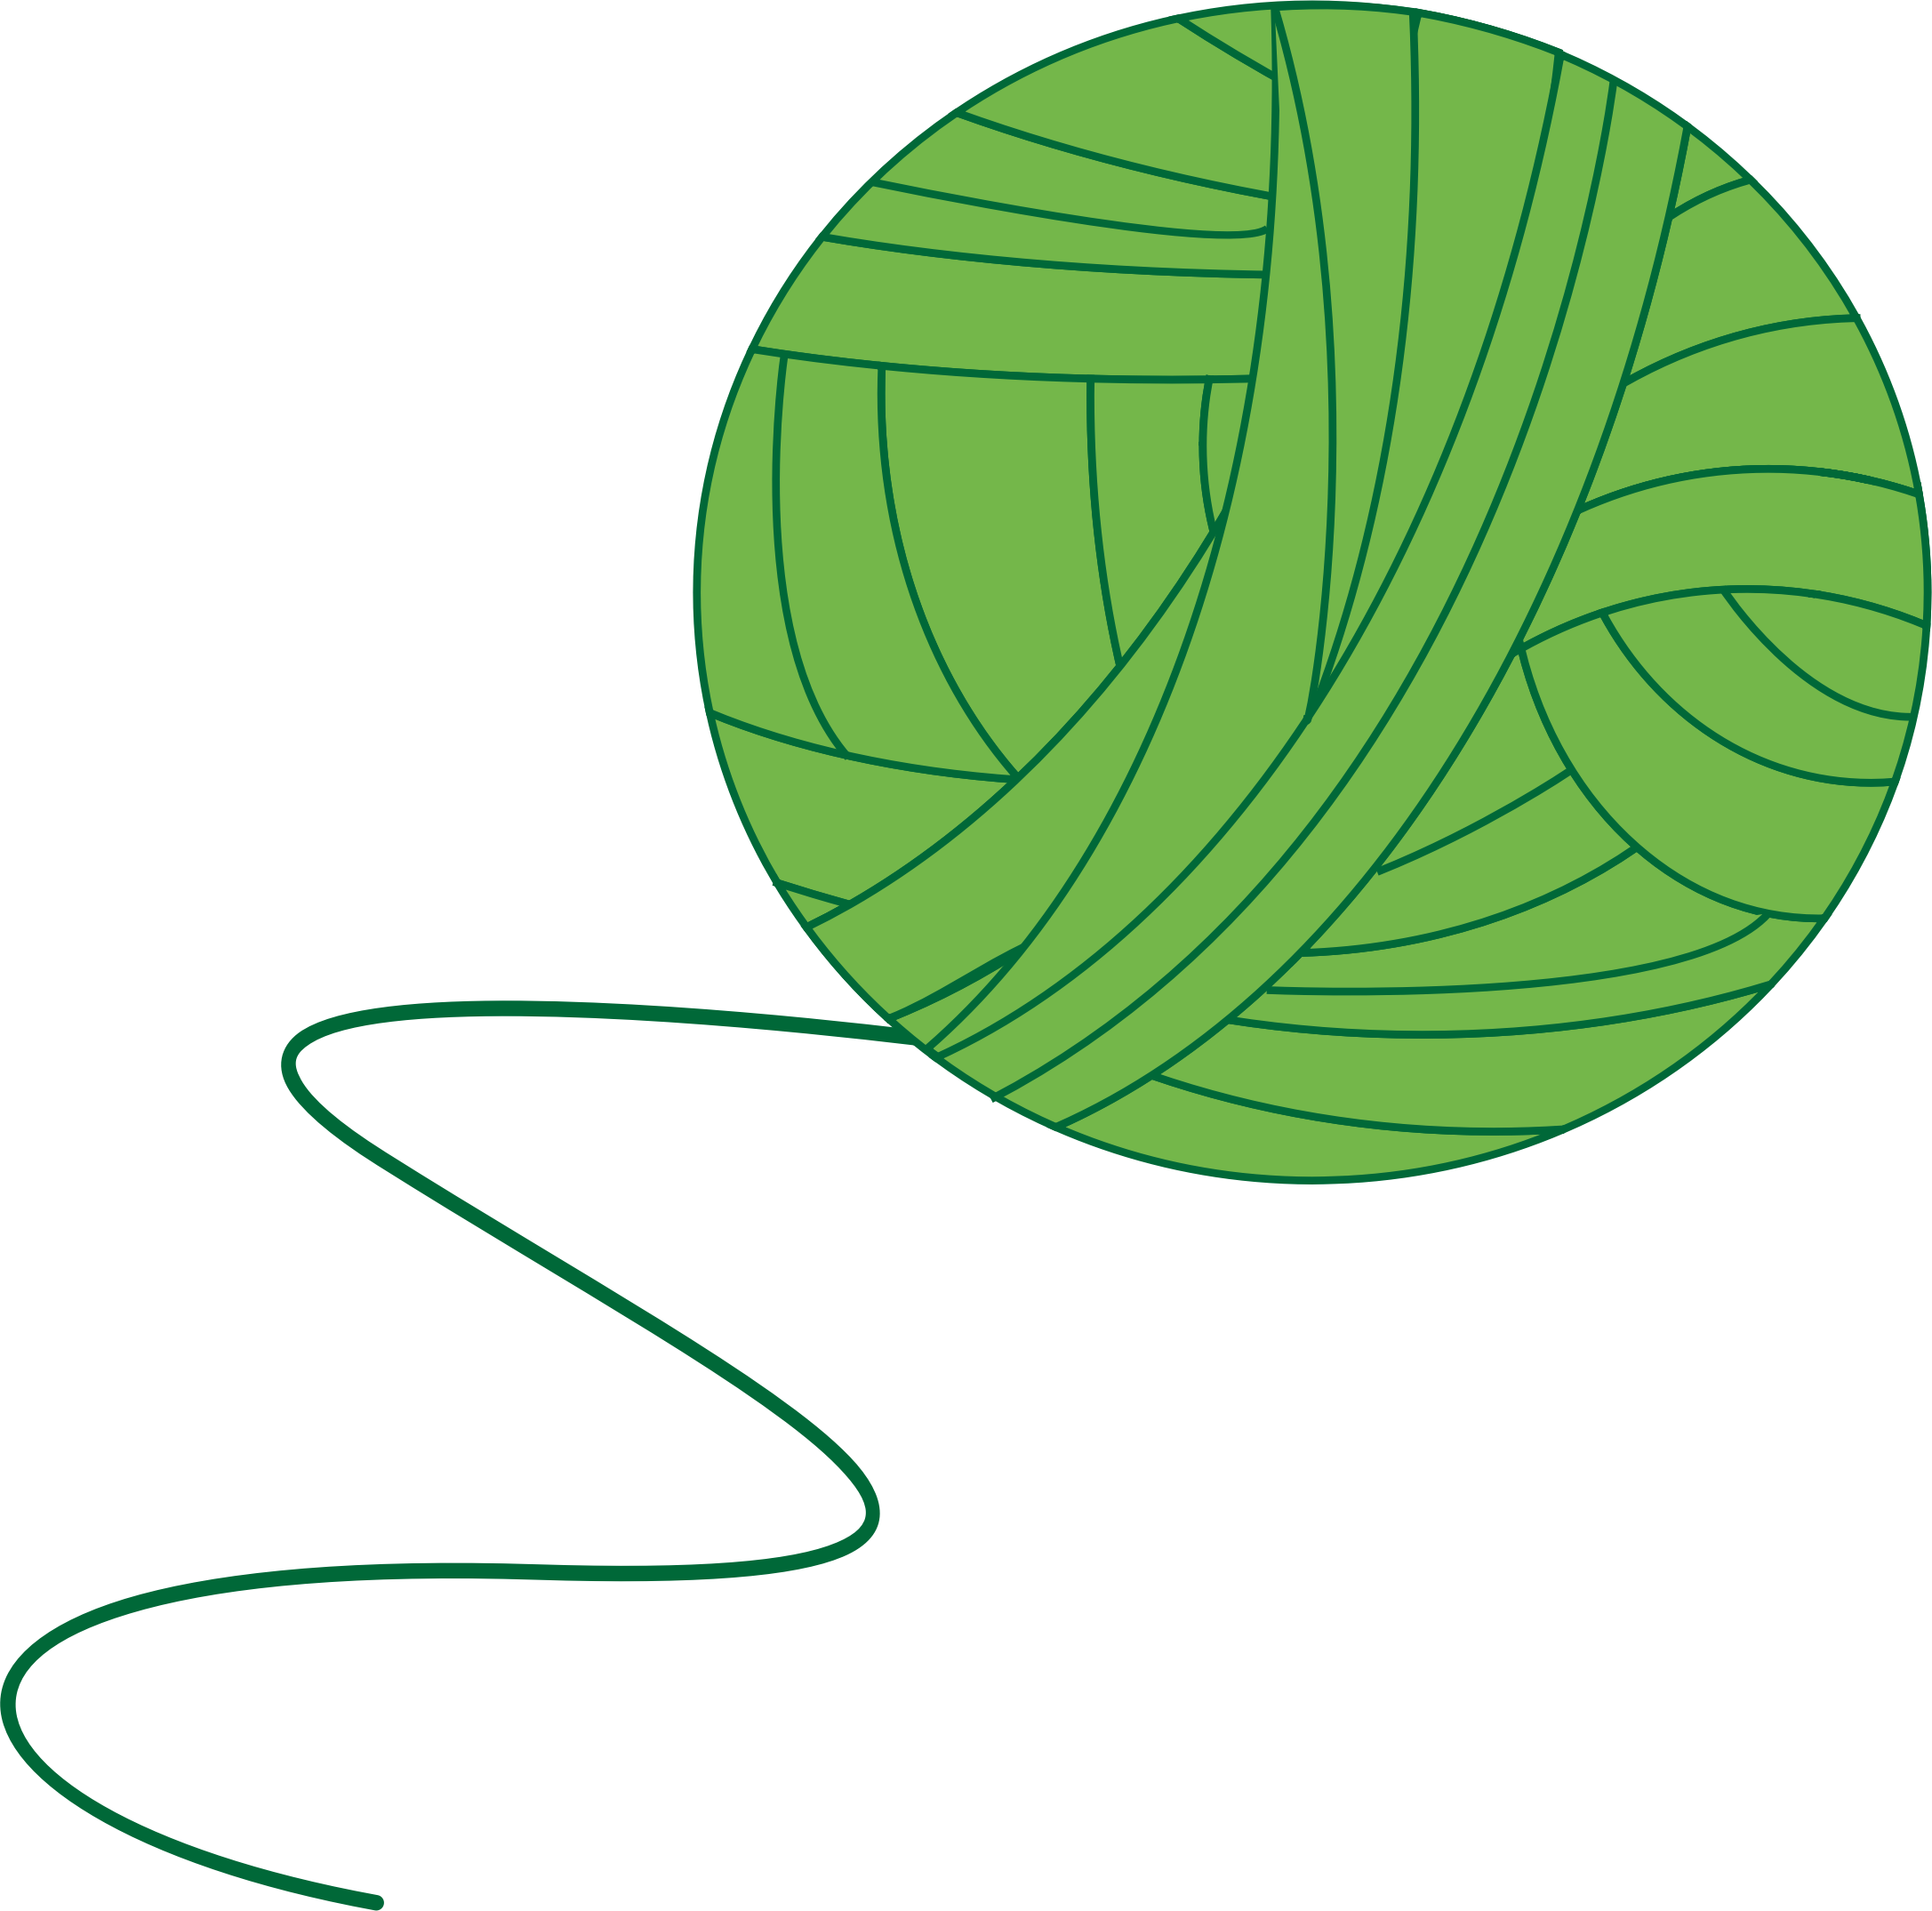 Green Ball of Yarn by intergrapher